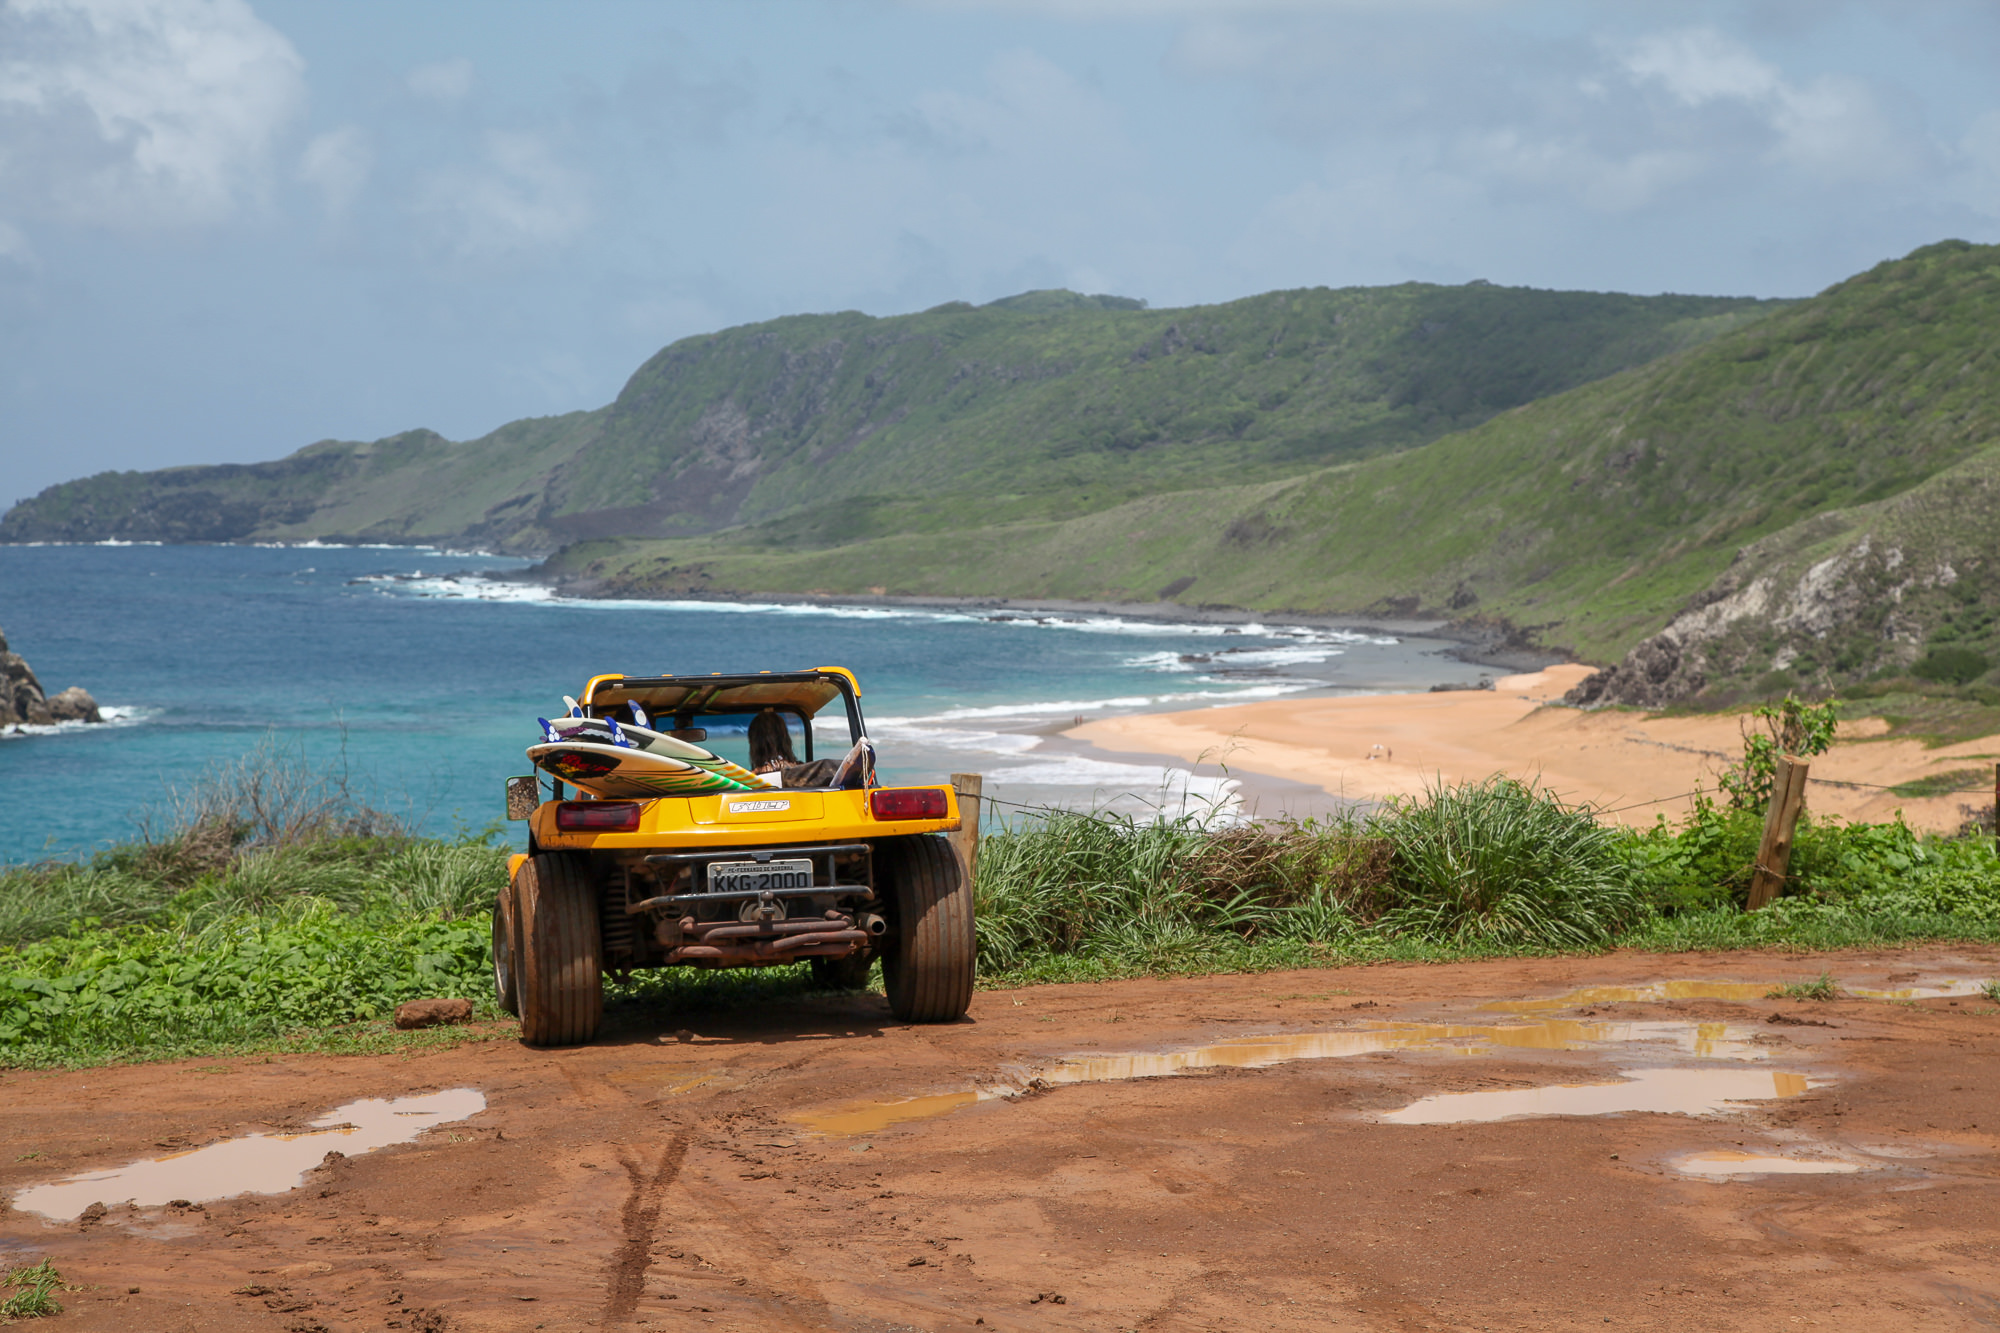 Fernando de Noronha dune buggy and surfboards